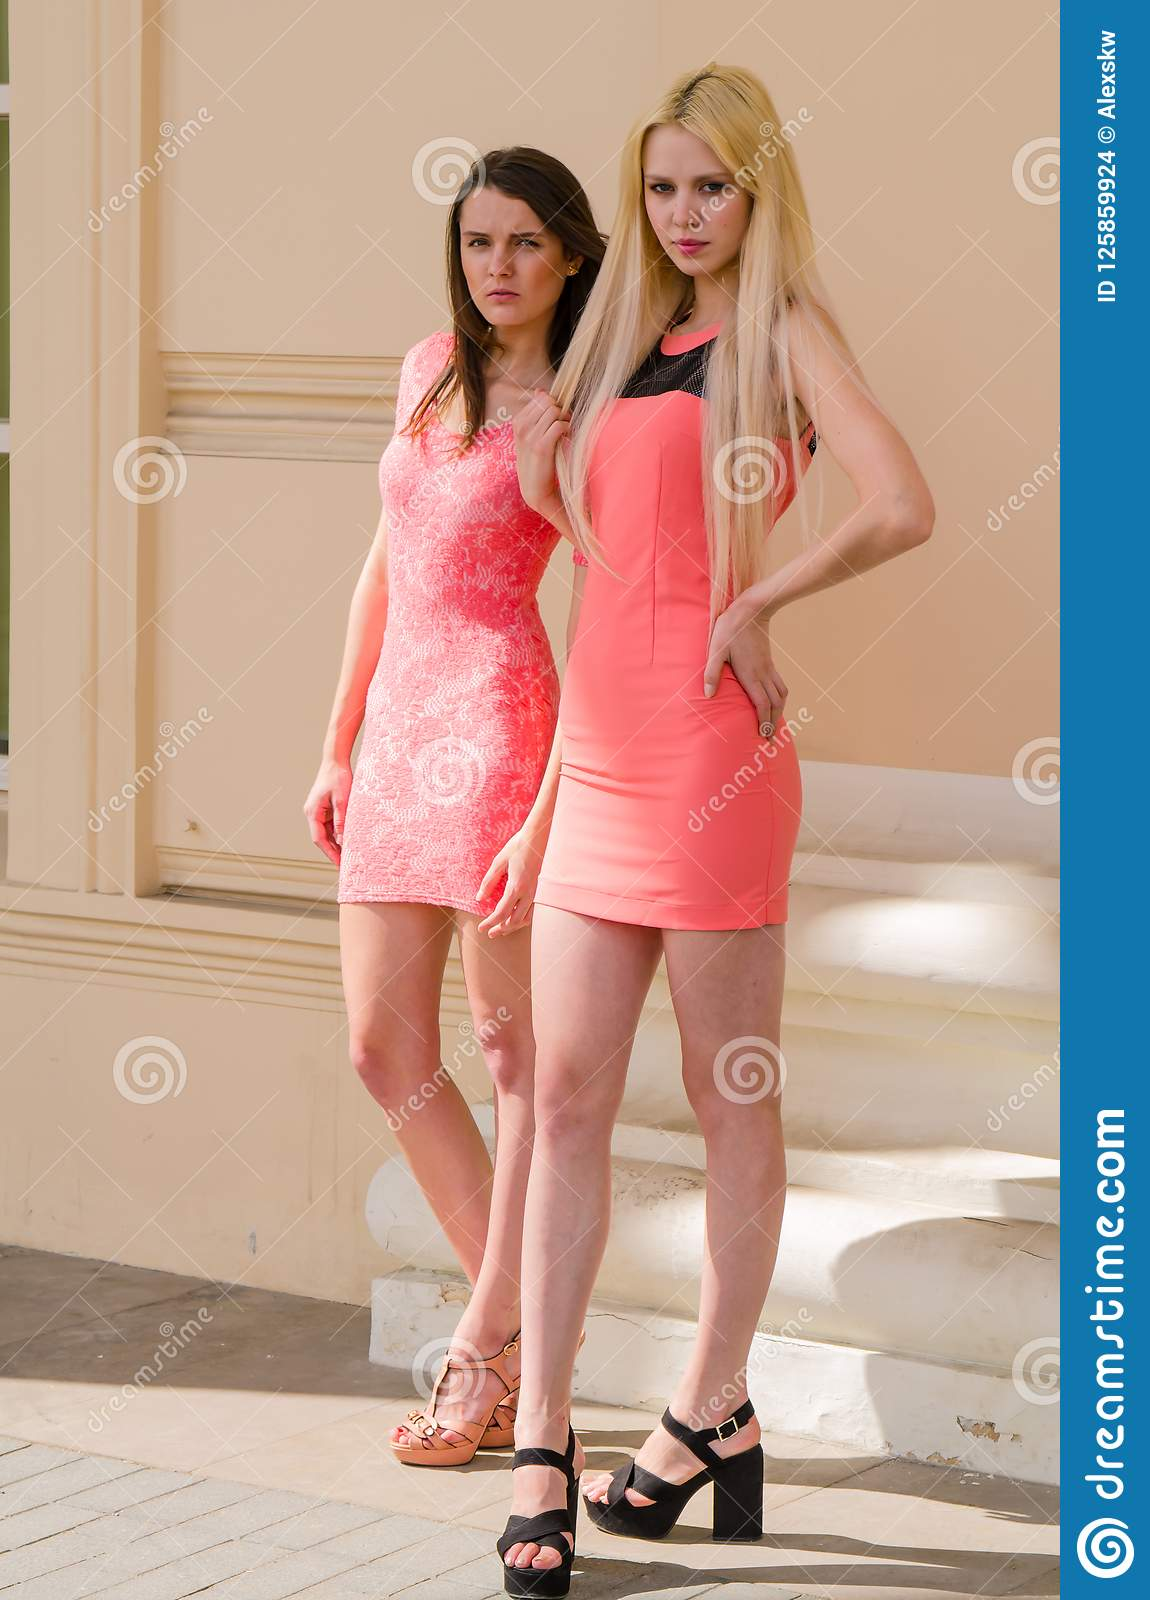 8f2dcfbe Girls, Blonde And Brunette, In Short Pink Dresses Stand In The Arch old  Stone Building With Large Columns Stock Photo - Image of contemplate, ...